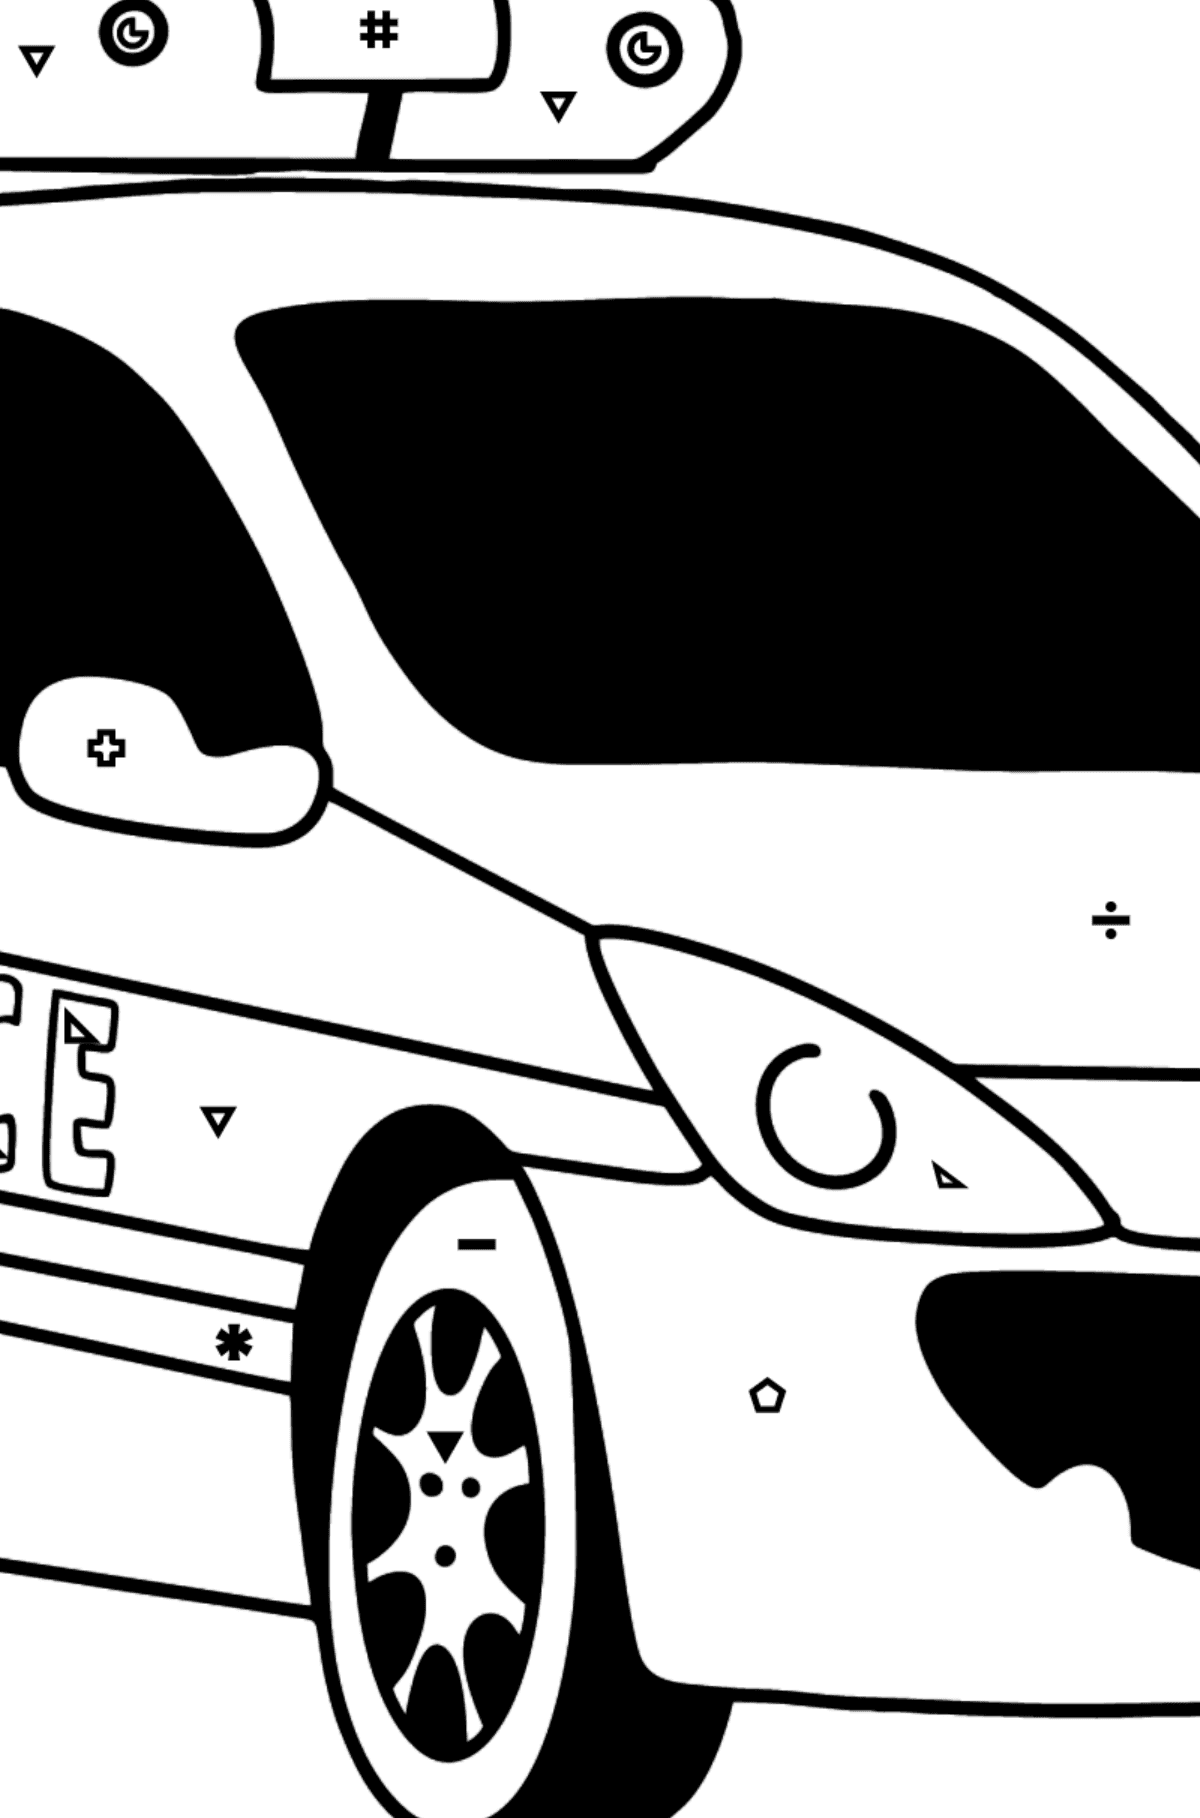 Police Car in France coloring page - Coloring by Symbols and Geometric Shapes for Kids